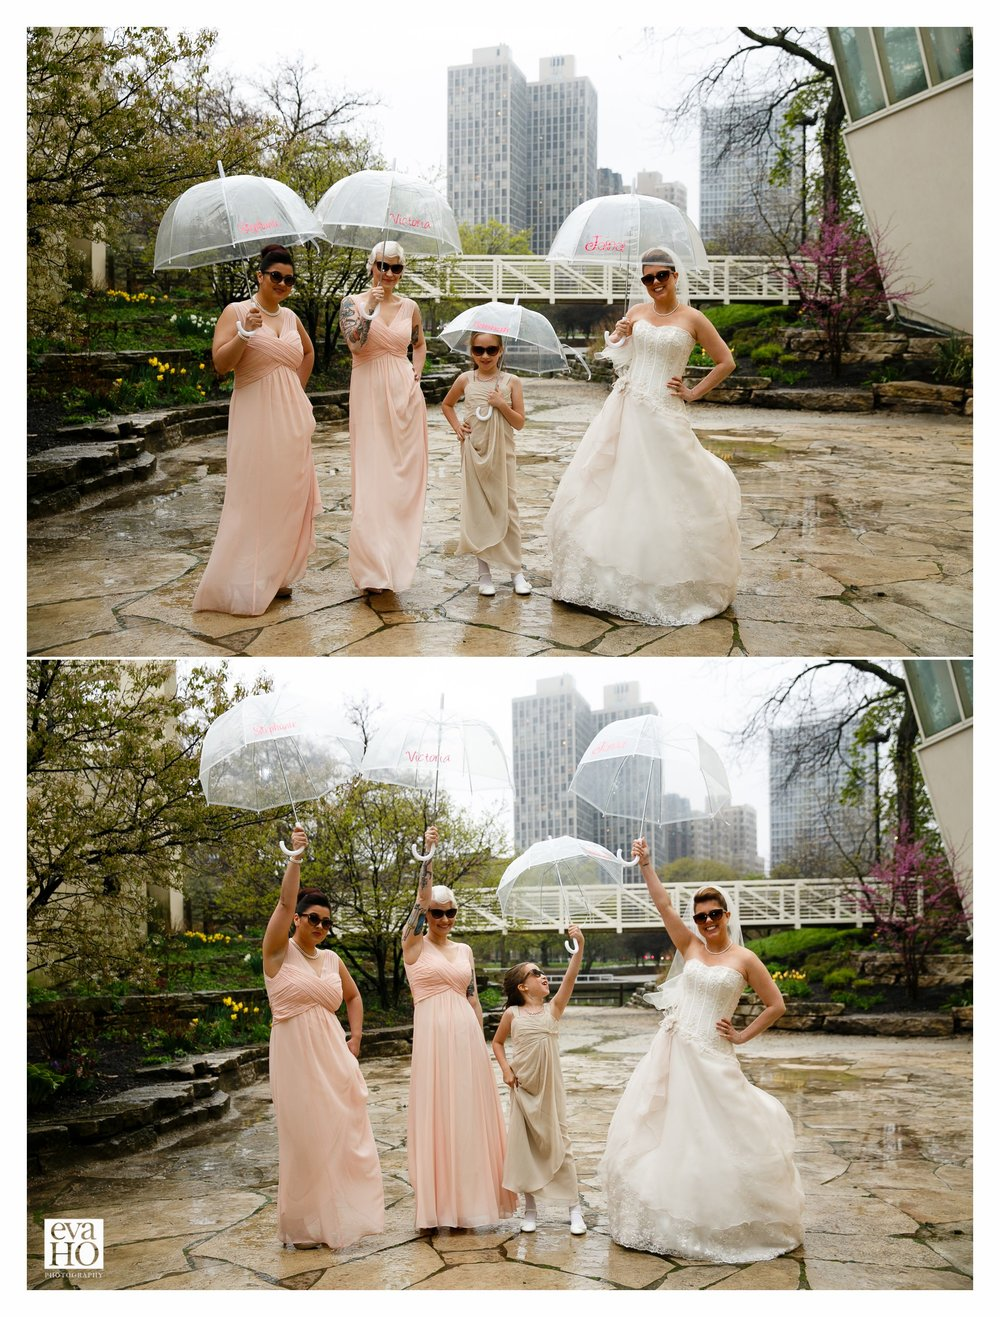 A little rain won't stop this fabulous wedding party!